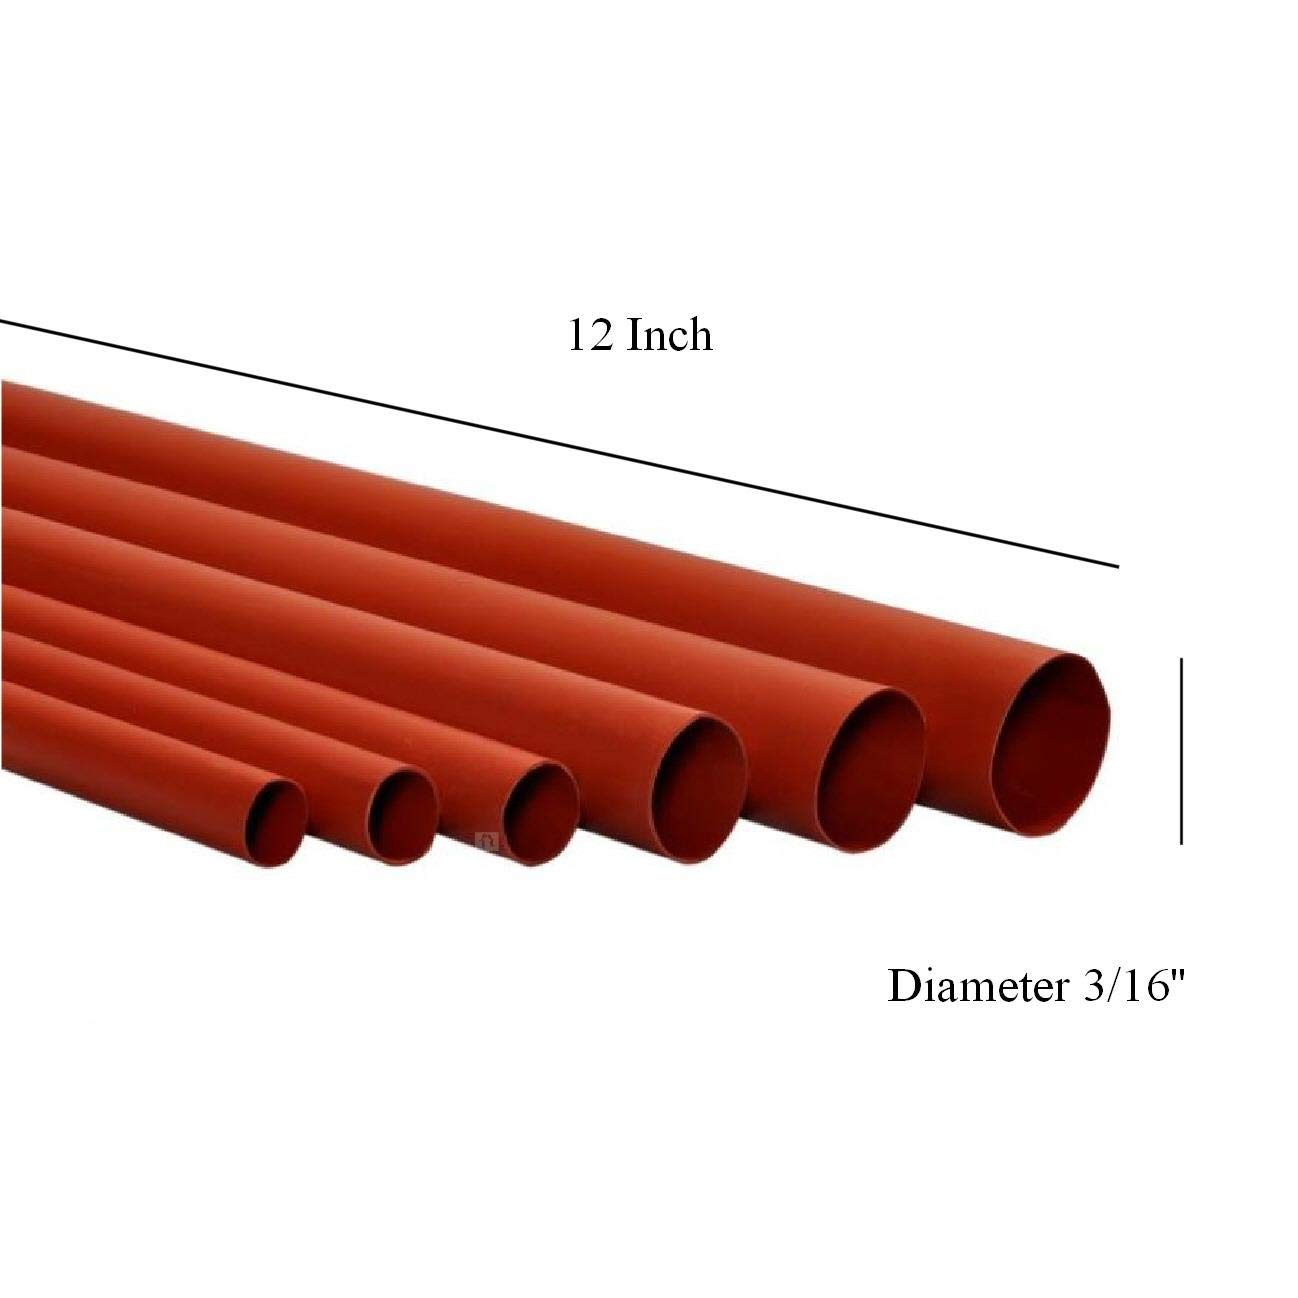 10 x Heat Shrink Tubing 12 x 3//16 Flame Retardant Electric Wire Cable Sleeving